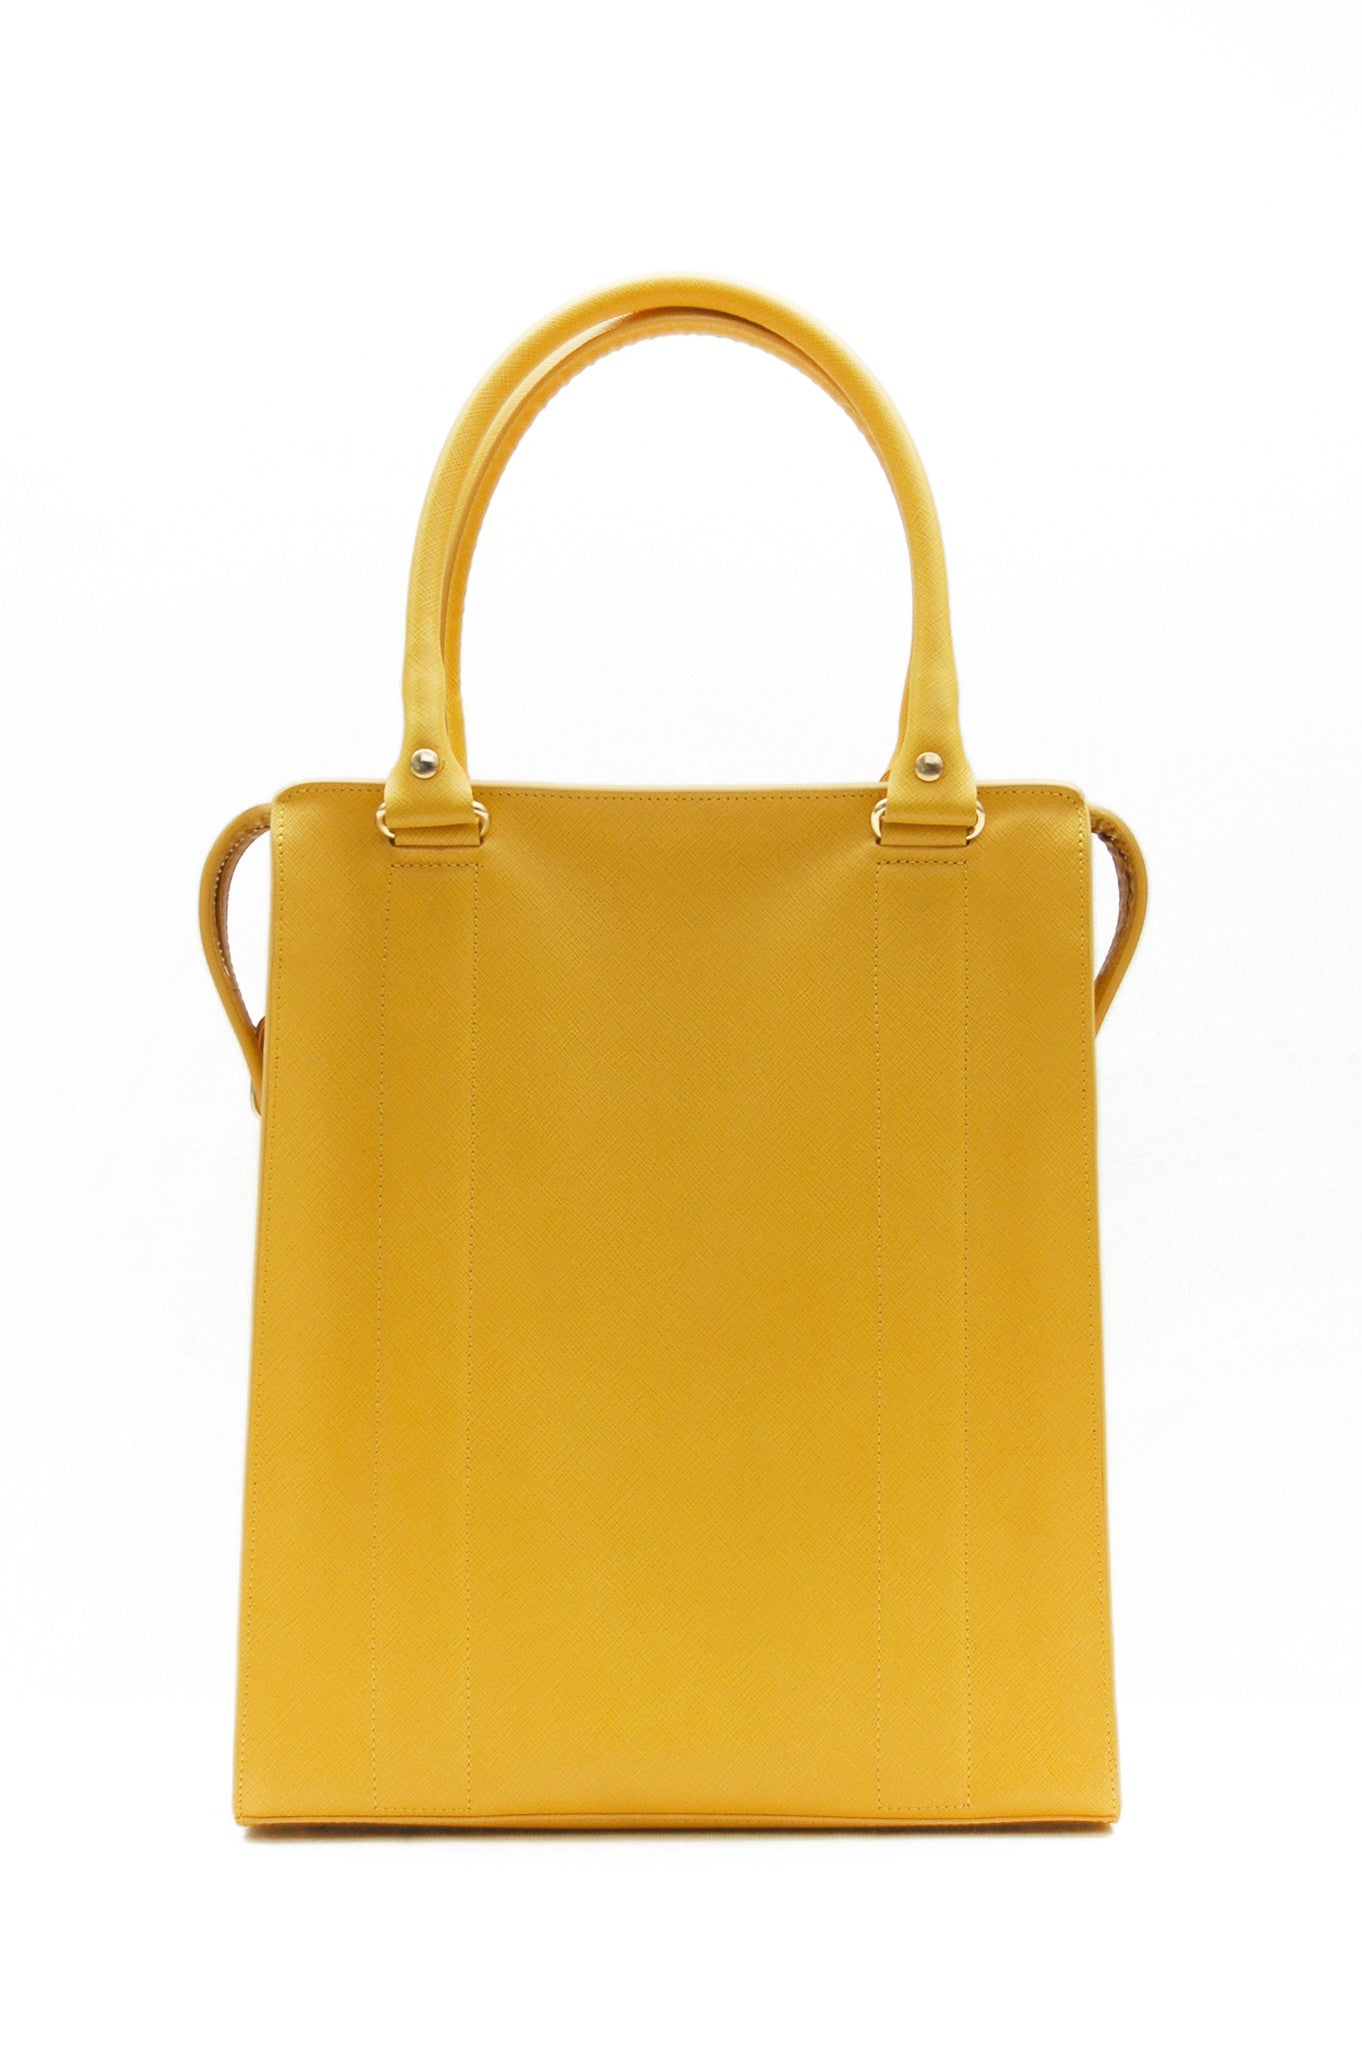 Wendee Ou: Ziggy structured bag yellow | Bags > Totes,Bags -  Hiphunters Shop